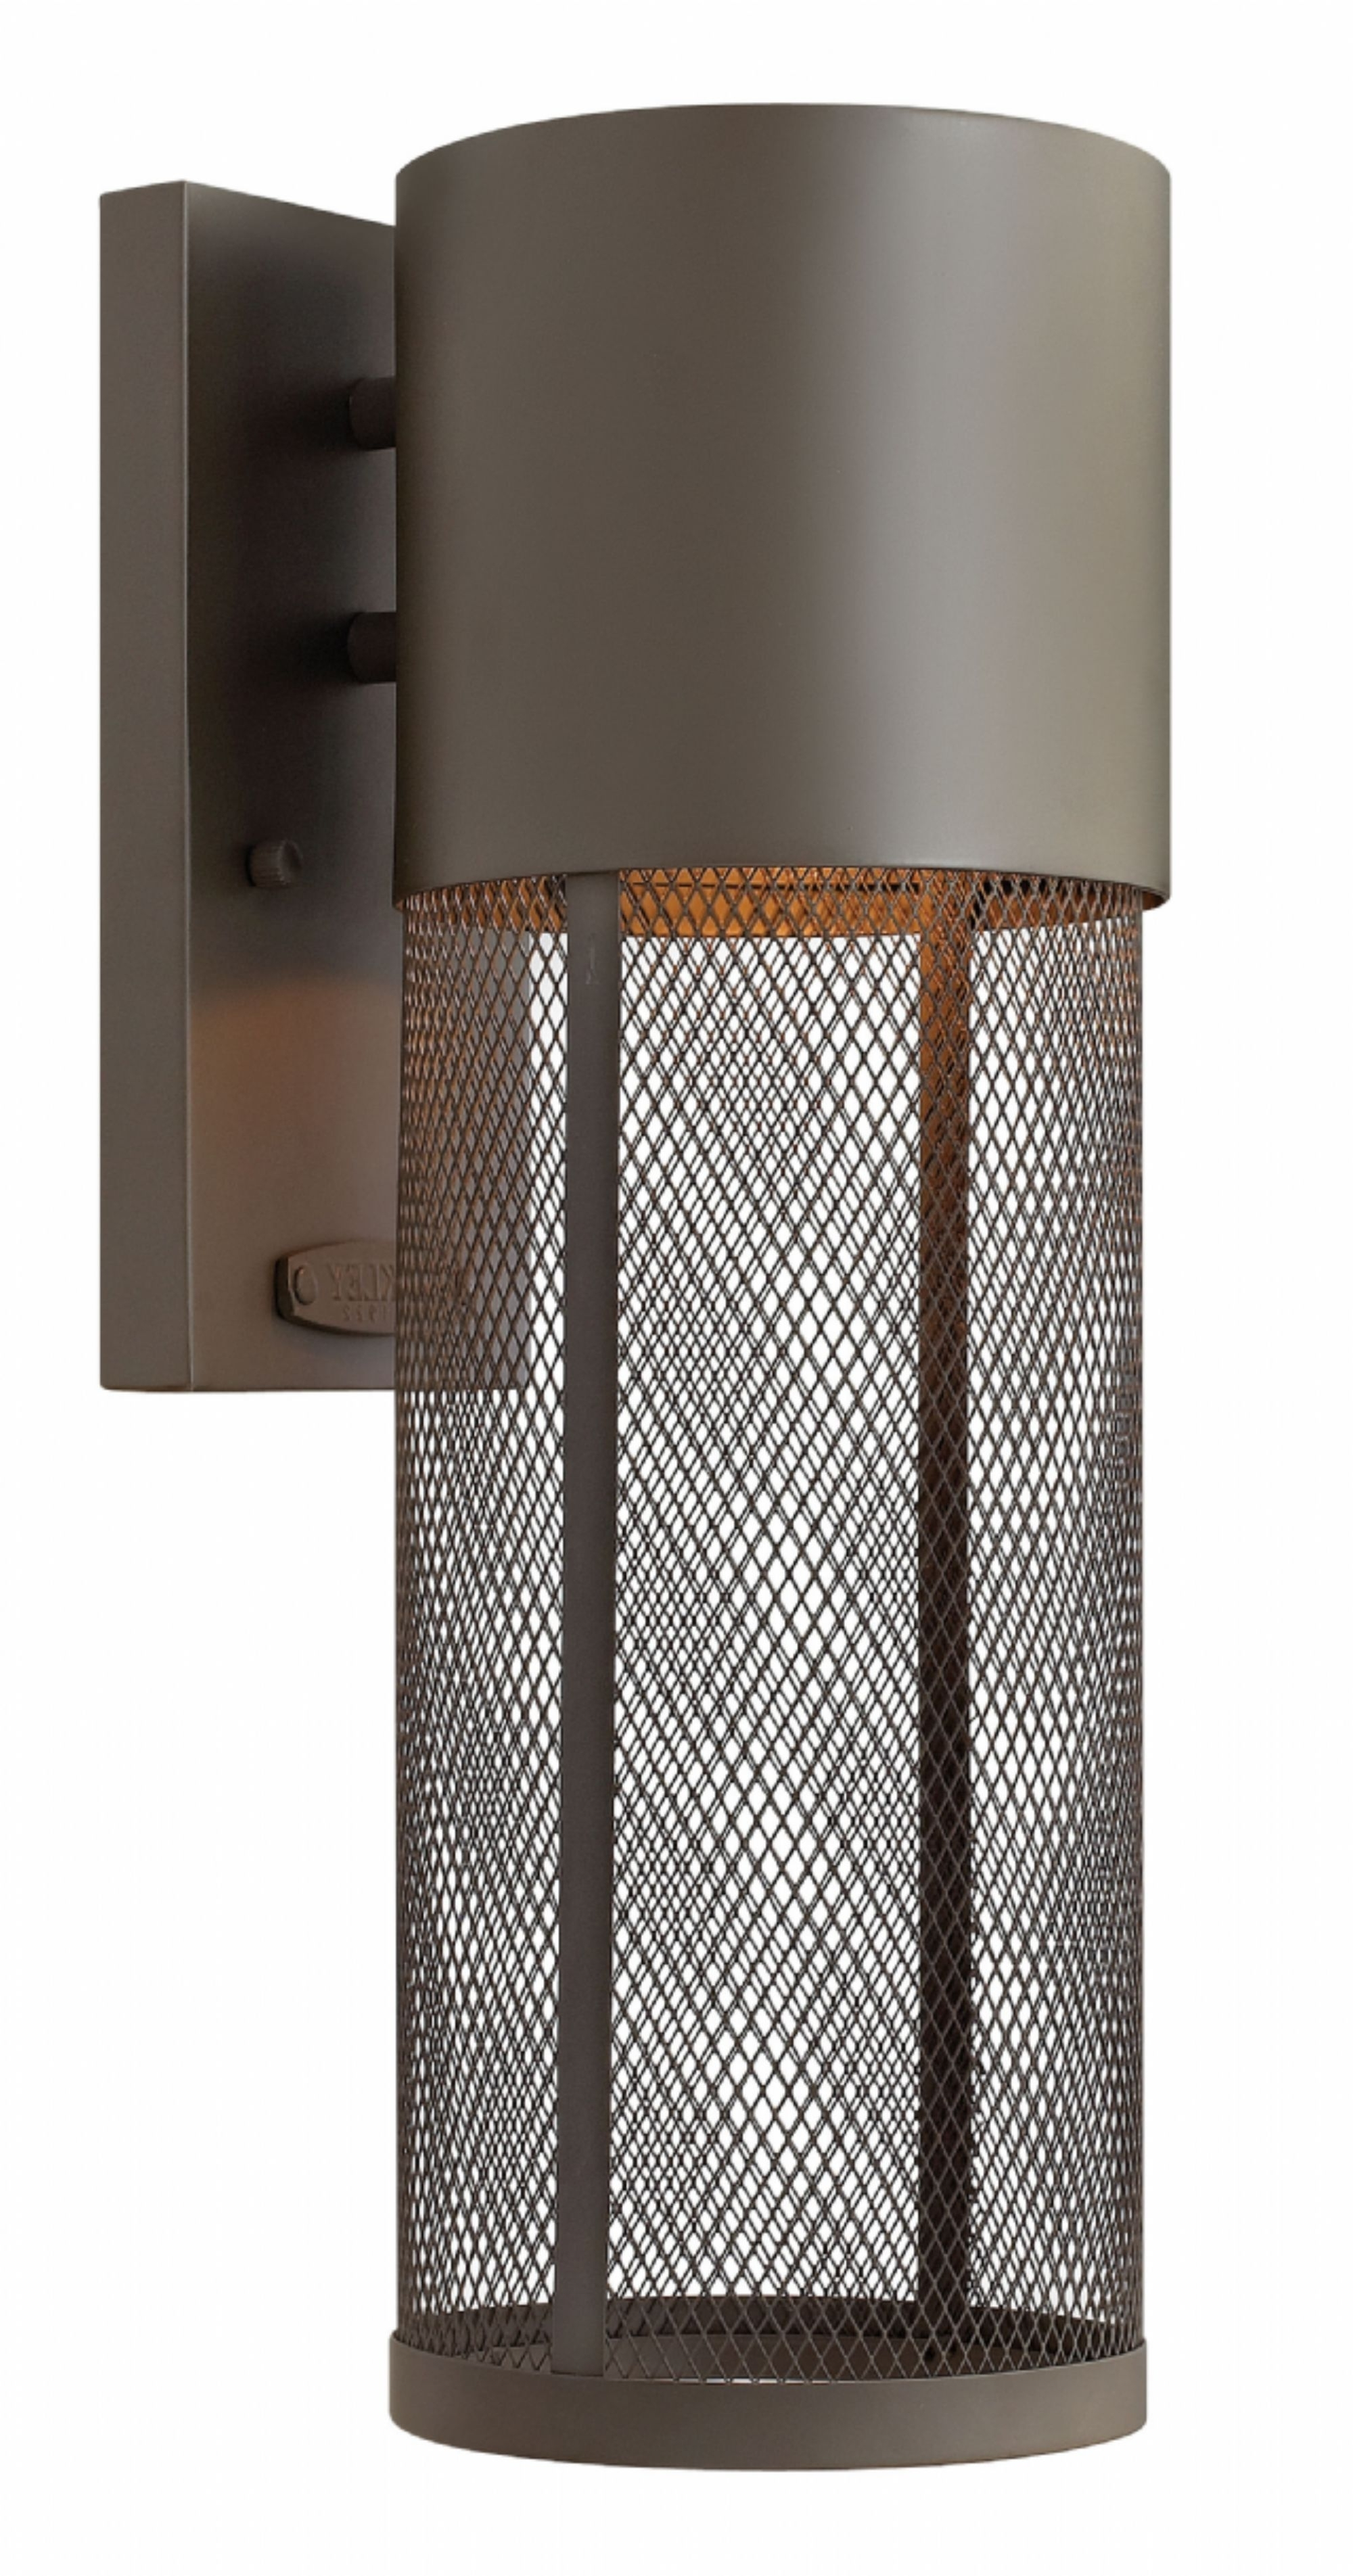 2018 Modern Led Hinkley Lighting With Regard To Buckeye Bronze Aria > Exterior Wall Mount (View 3 of 20)